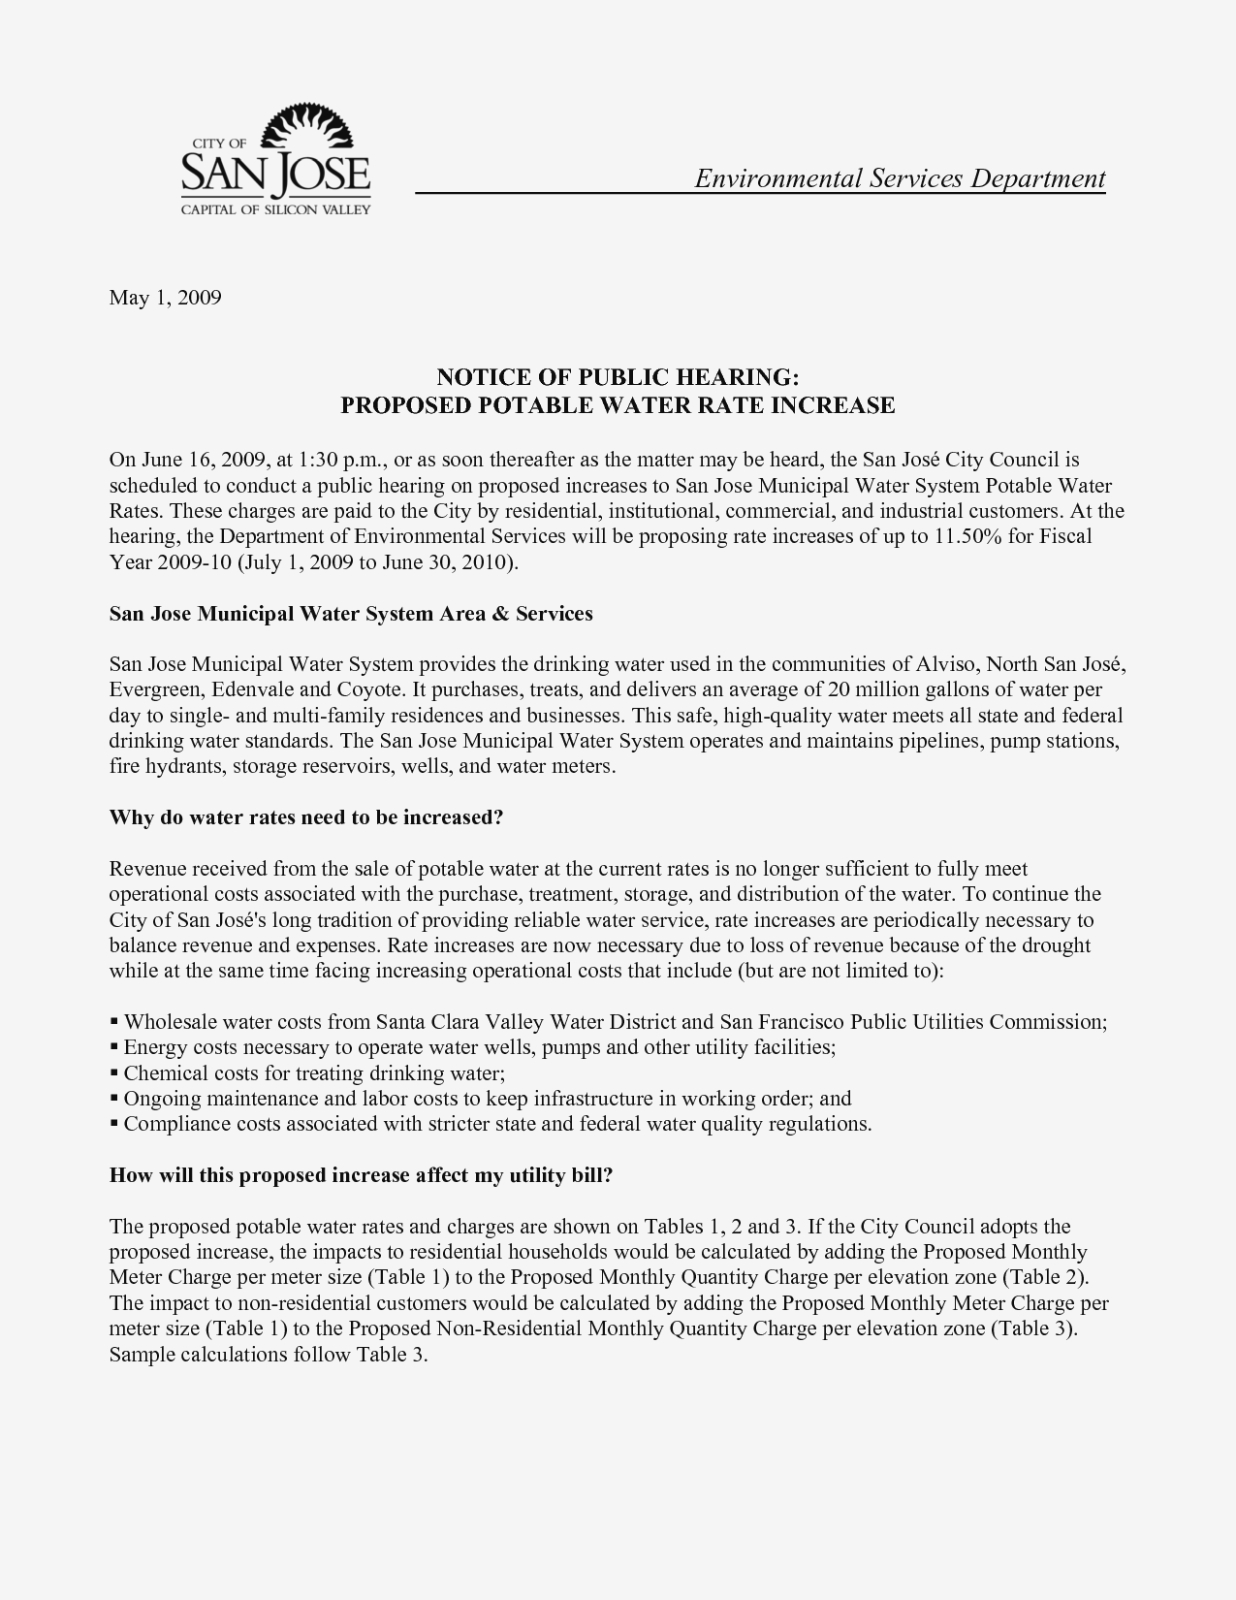 Sample Rent Increase Letter Espanoloik10 – Rent Increase - Free Printable Rent Increase Letter Uk